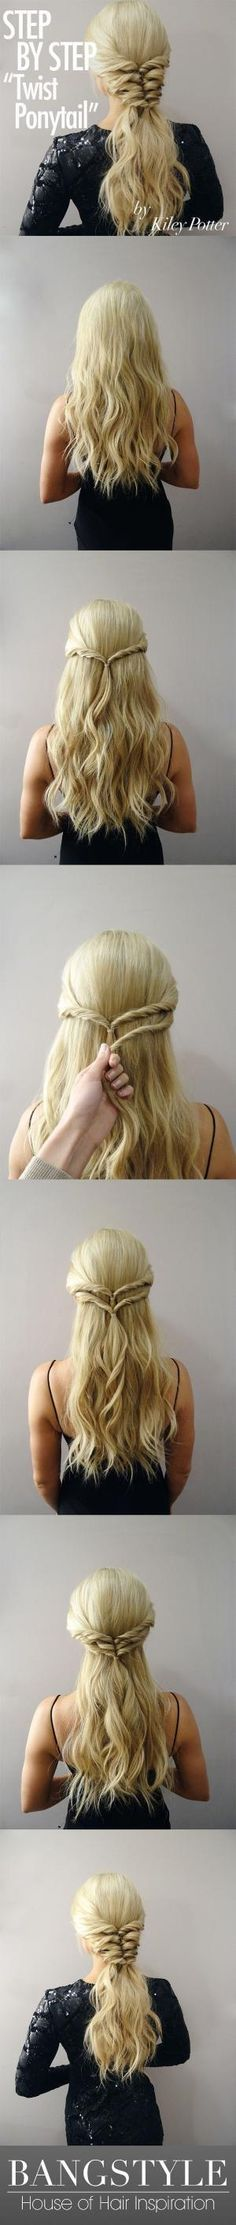 20 Gorgeous Braided Hairstyles For Long Hair - Trend To Wear by estelat